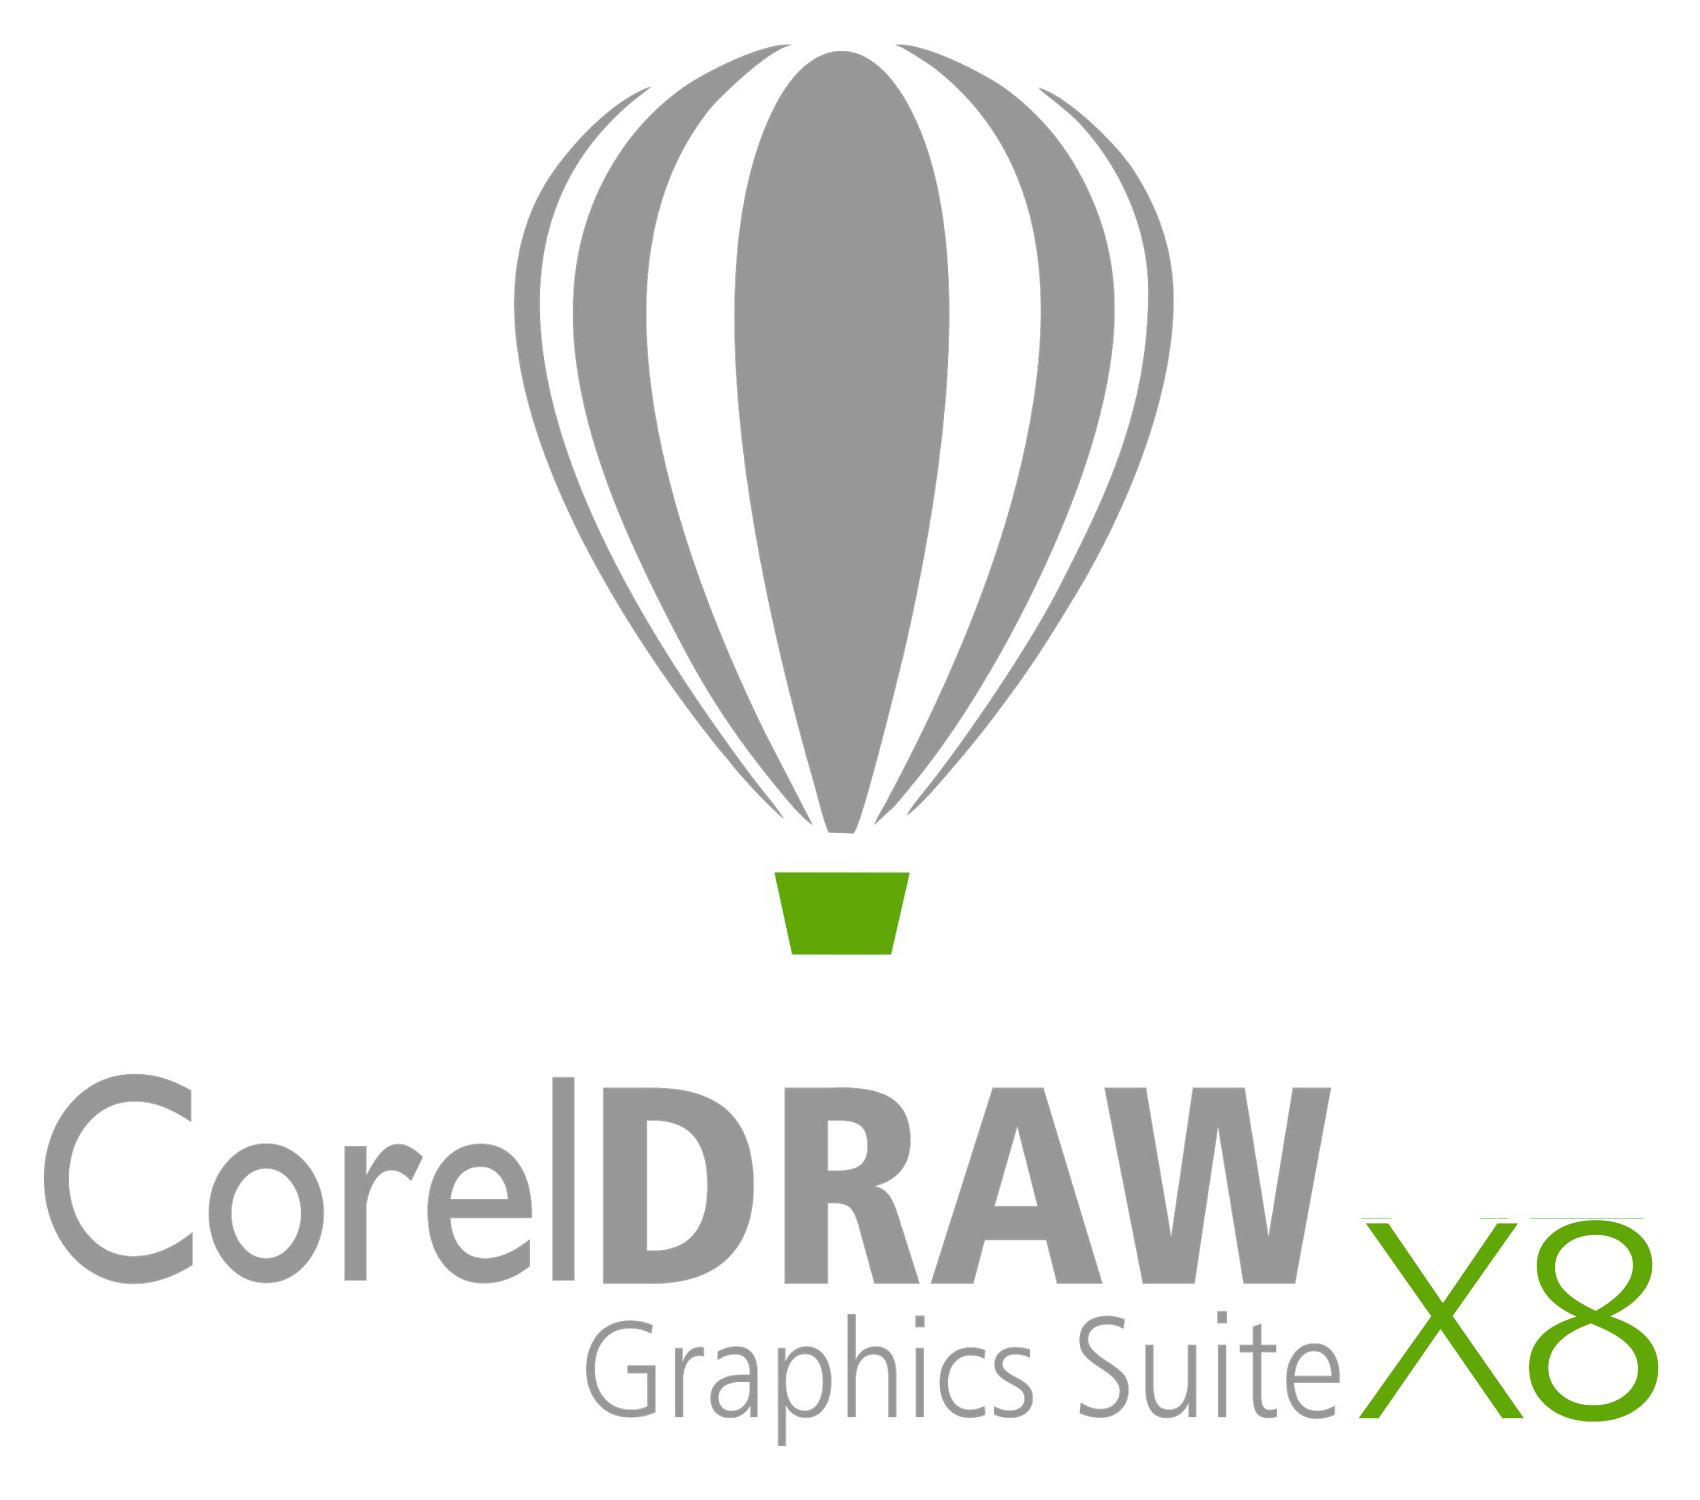 Corel draw version - Corel Draw Version 26